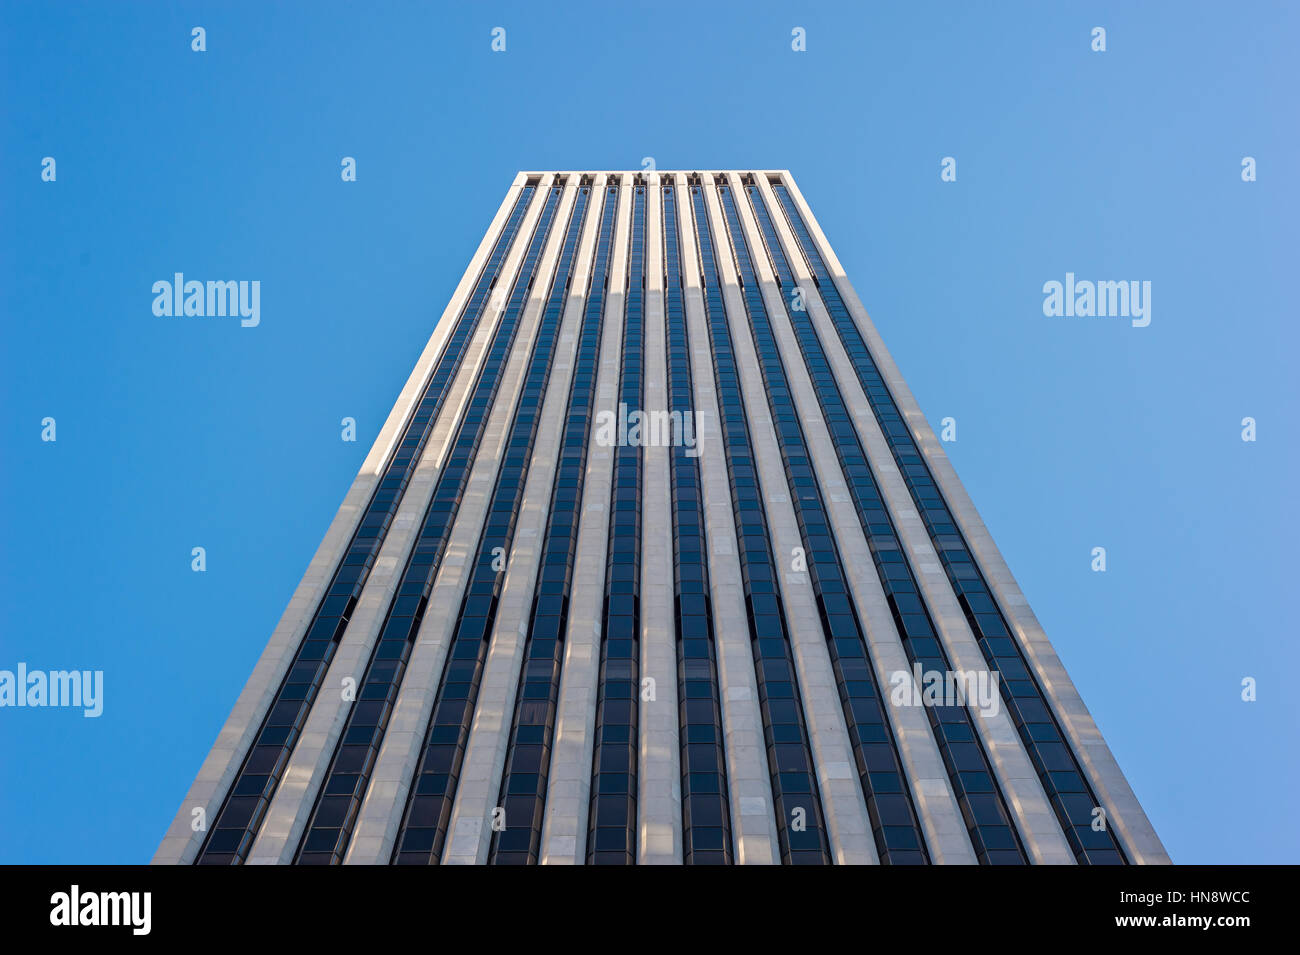 General Motors building and Apple Store on Fifth Avenue, New York Stock Photo